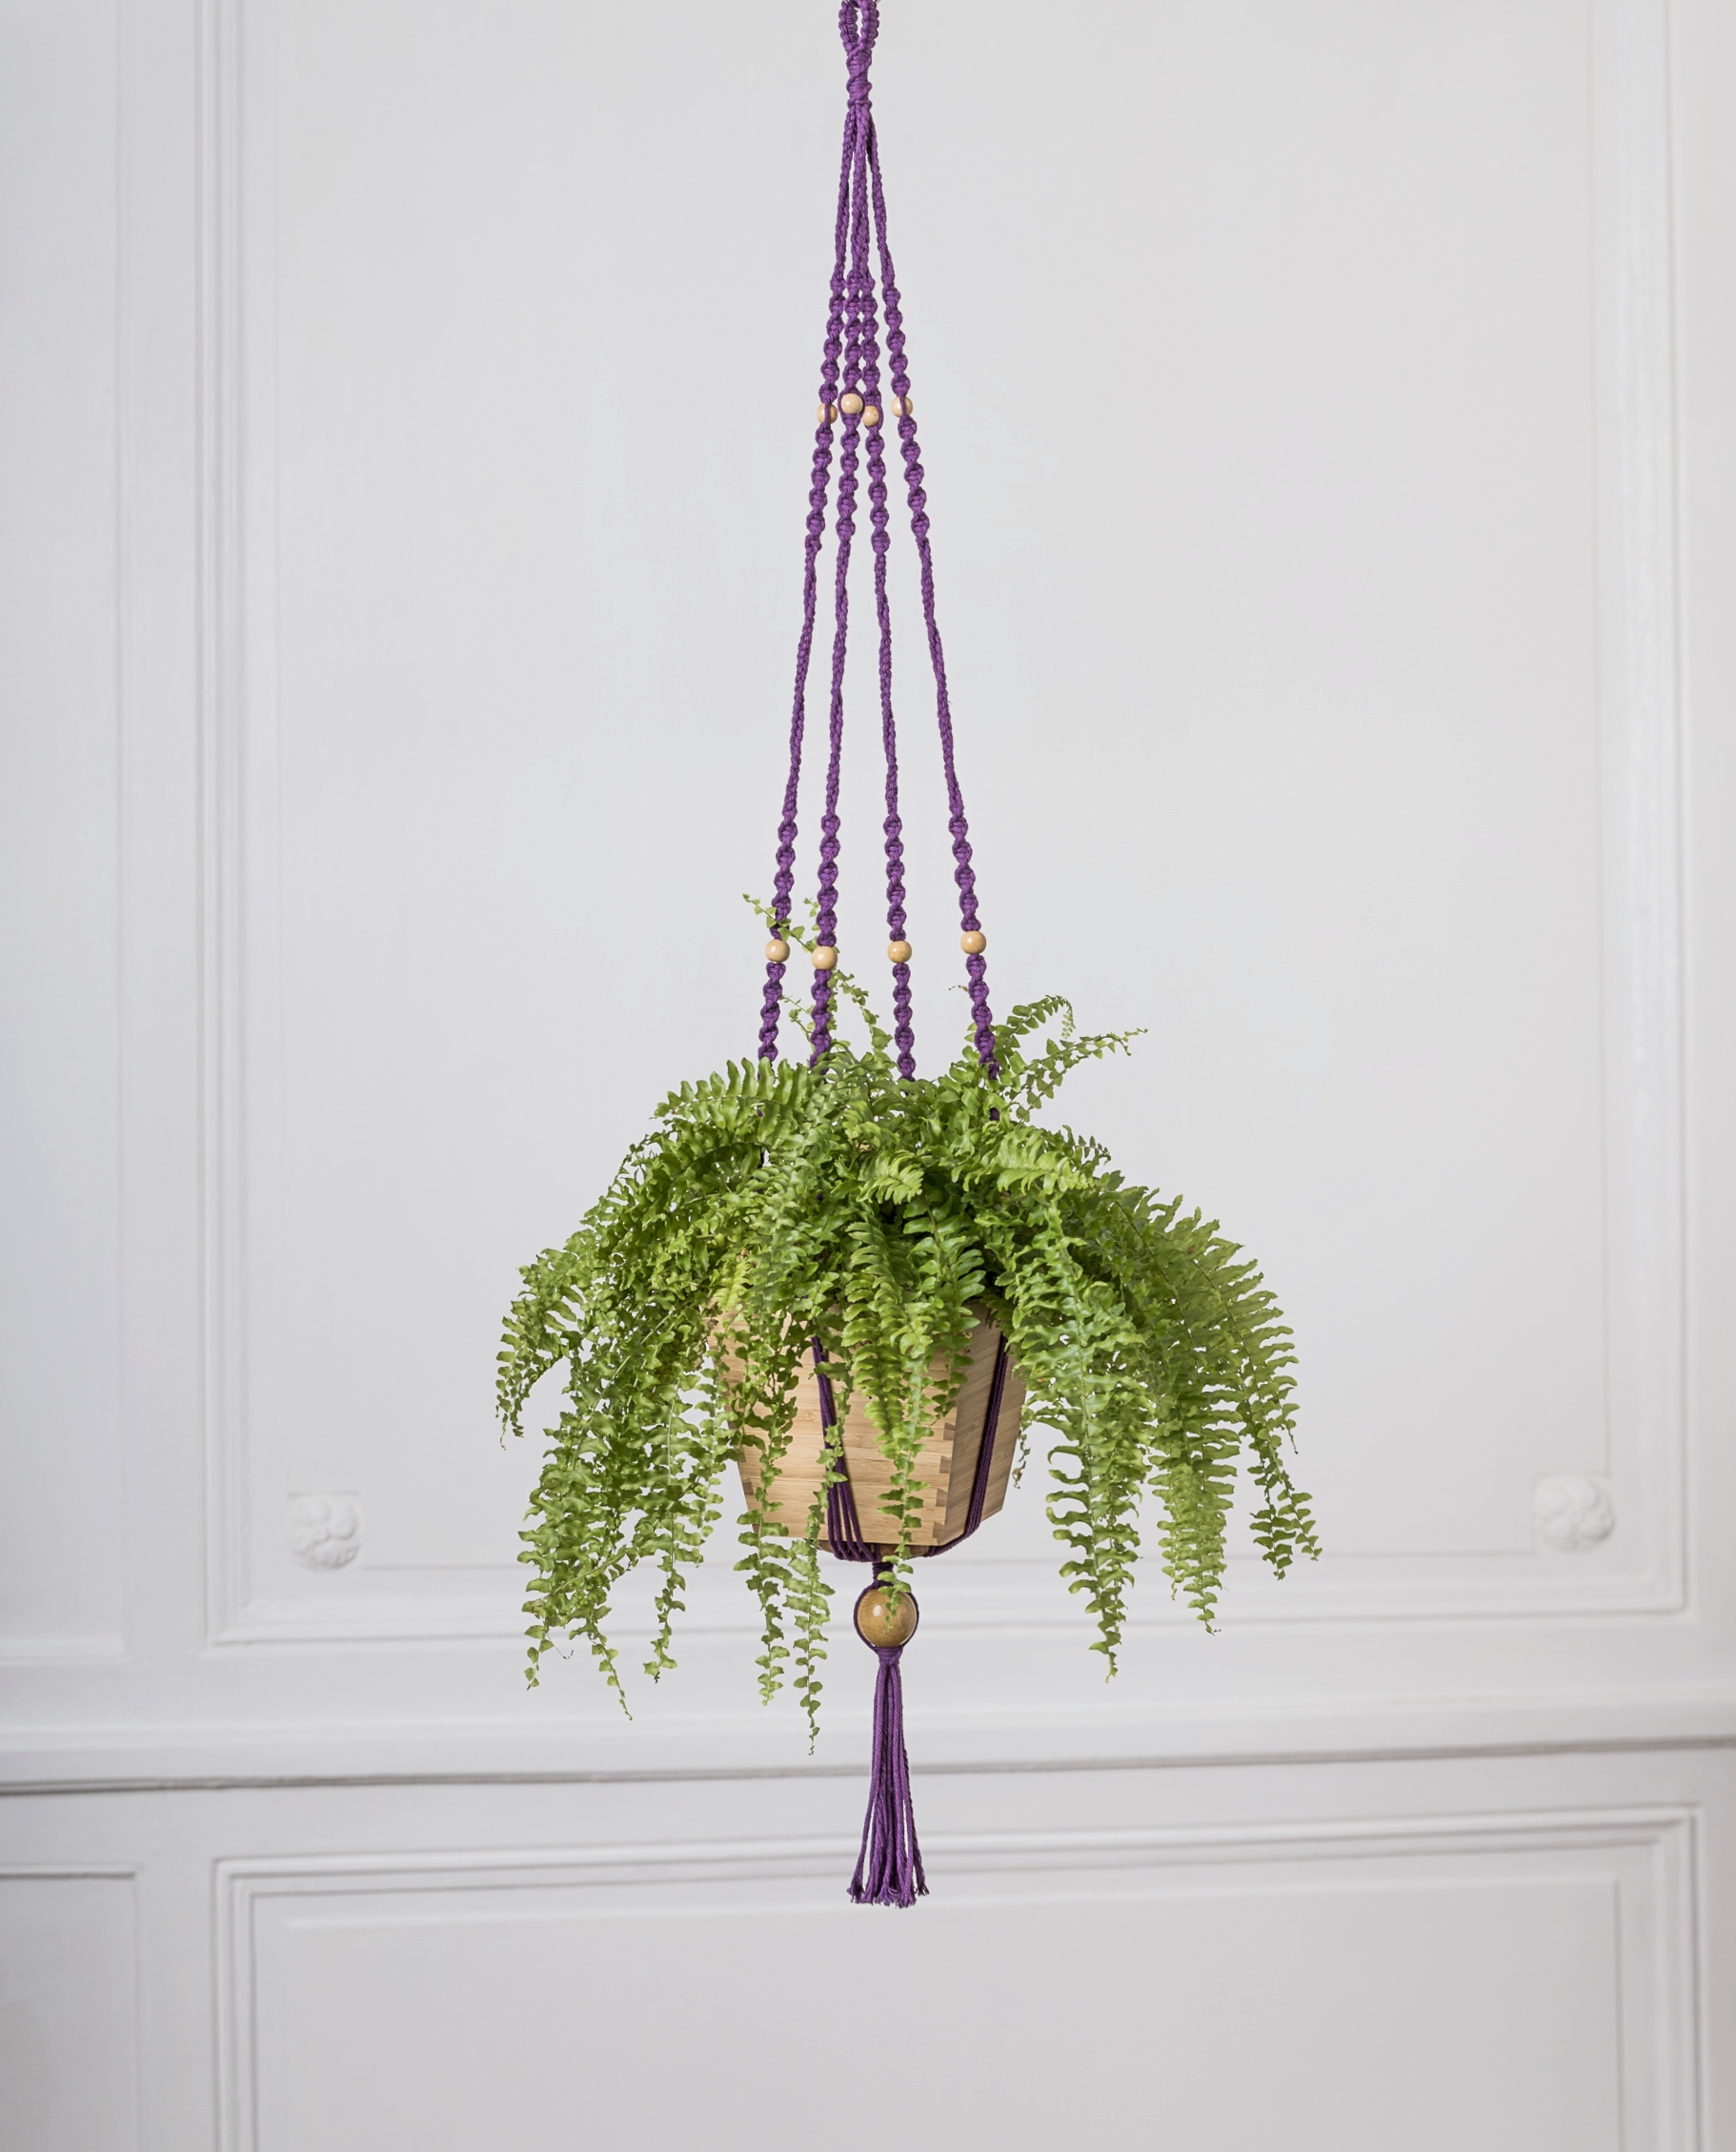 Suspension pour plante en macram bymadjo 025 shanti d co - Suspension pour plante ...